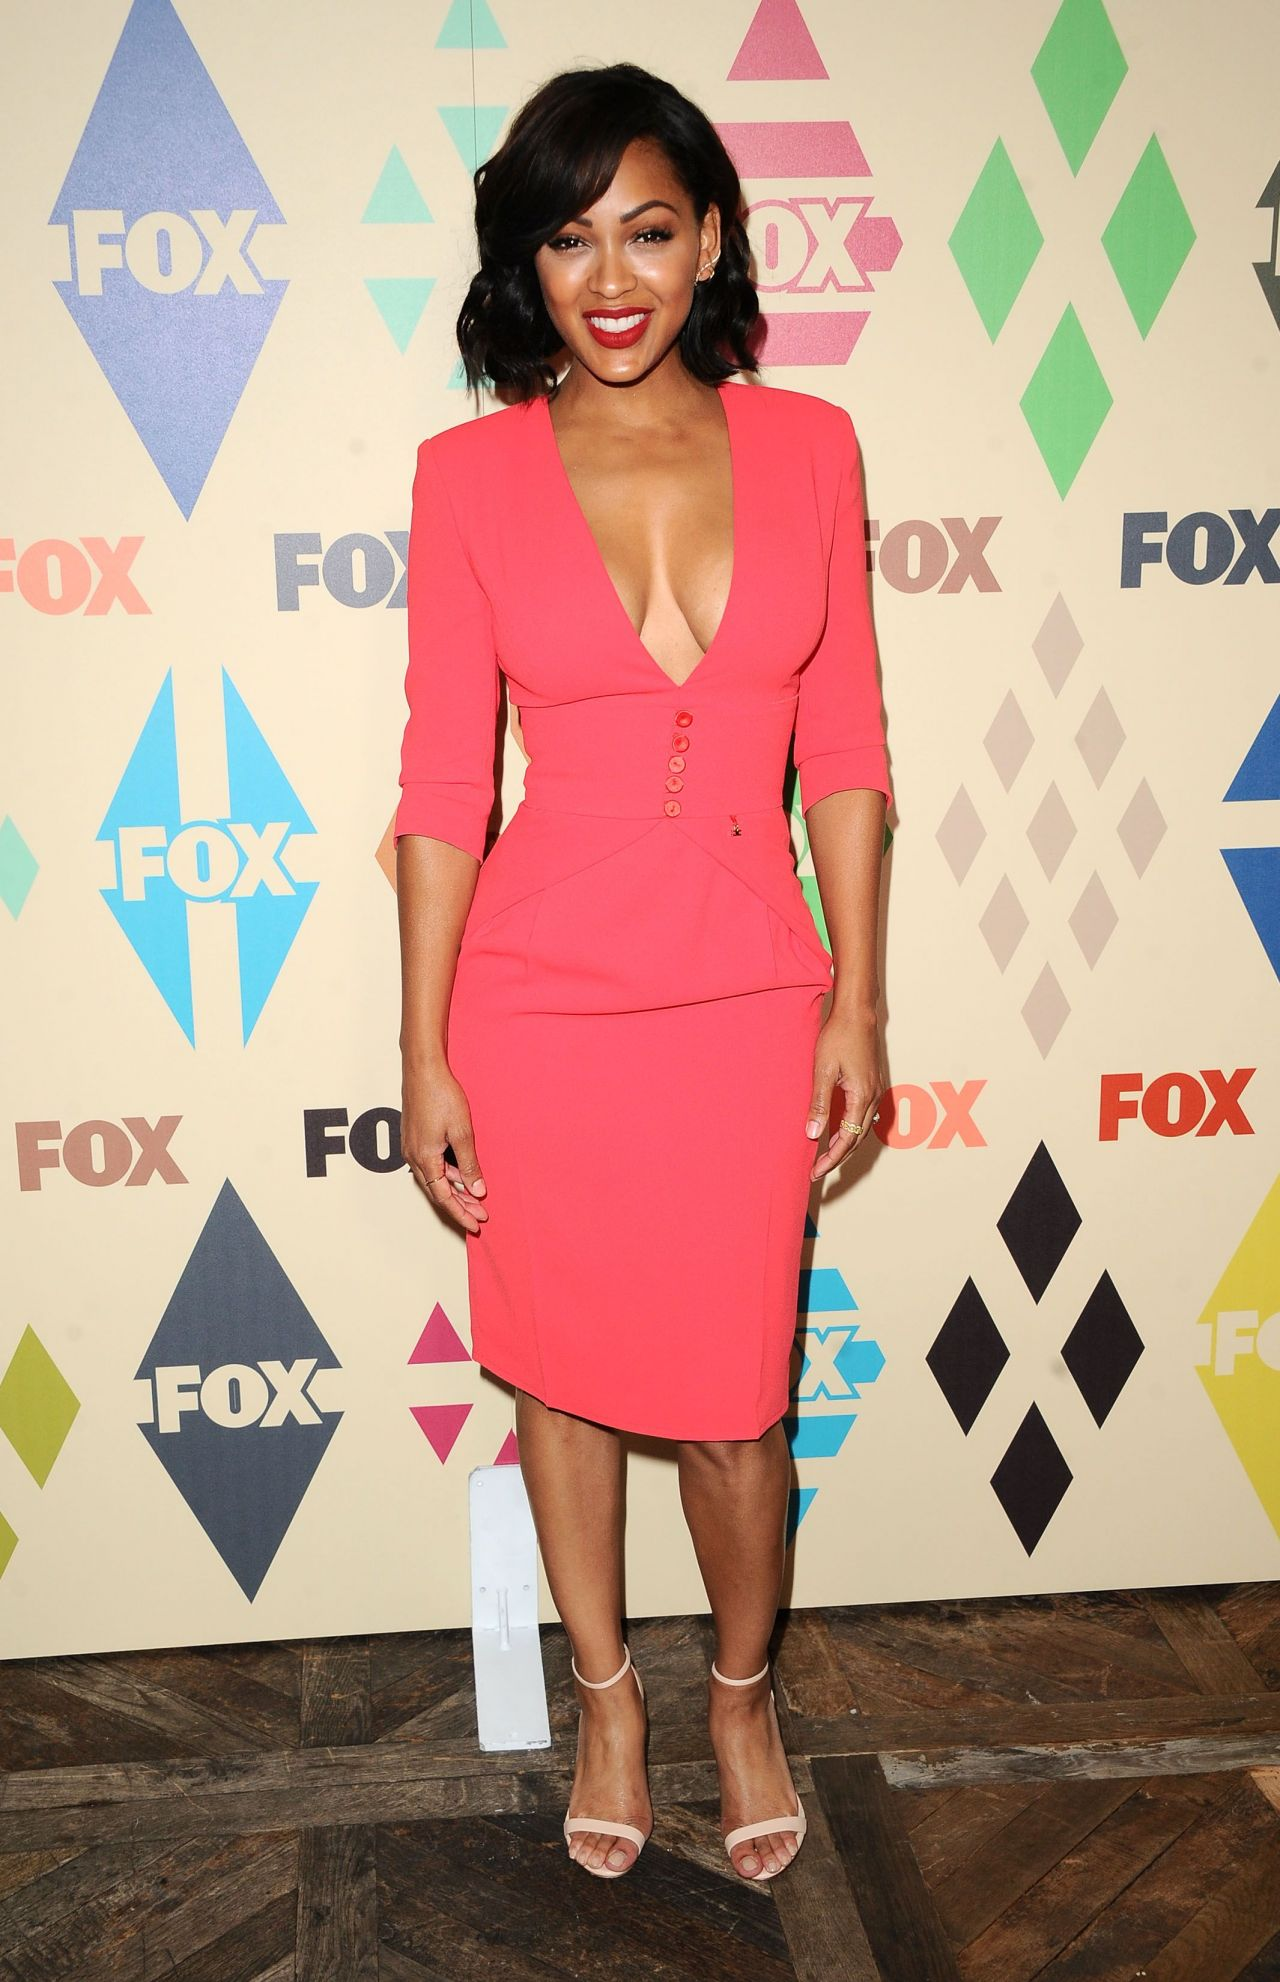 meagan good surgerymeagan good love song, meagan good vk, meagan good friday, meagan good fan site, meagan good surgery, meagan good insta, meagan good instagram, meagan good book